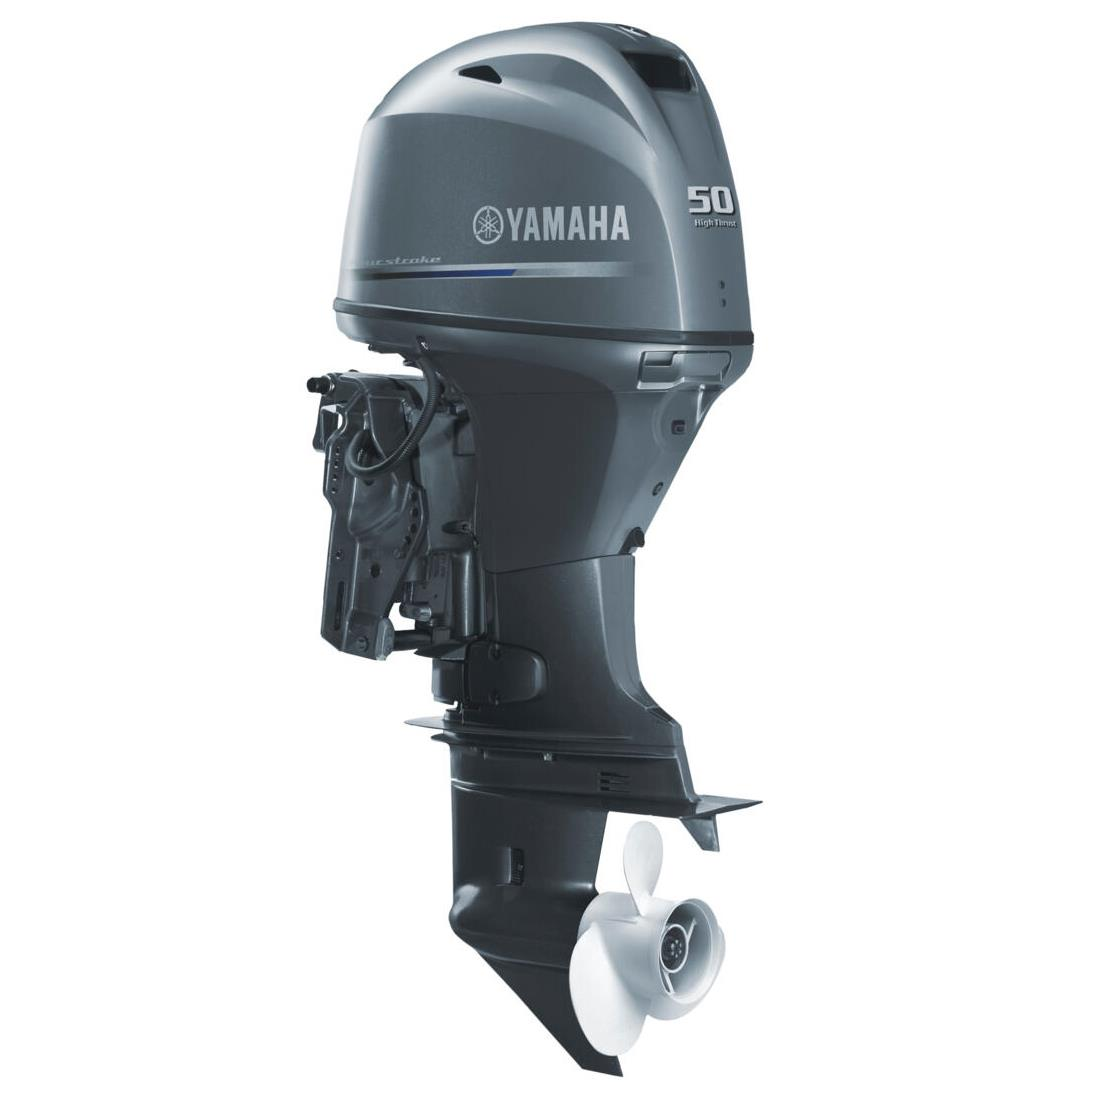 Yamaha FT50JETL 50HP High Thrust Long Shaft Outboard